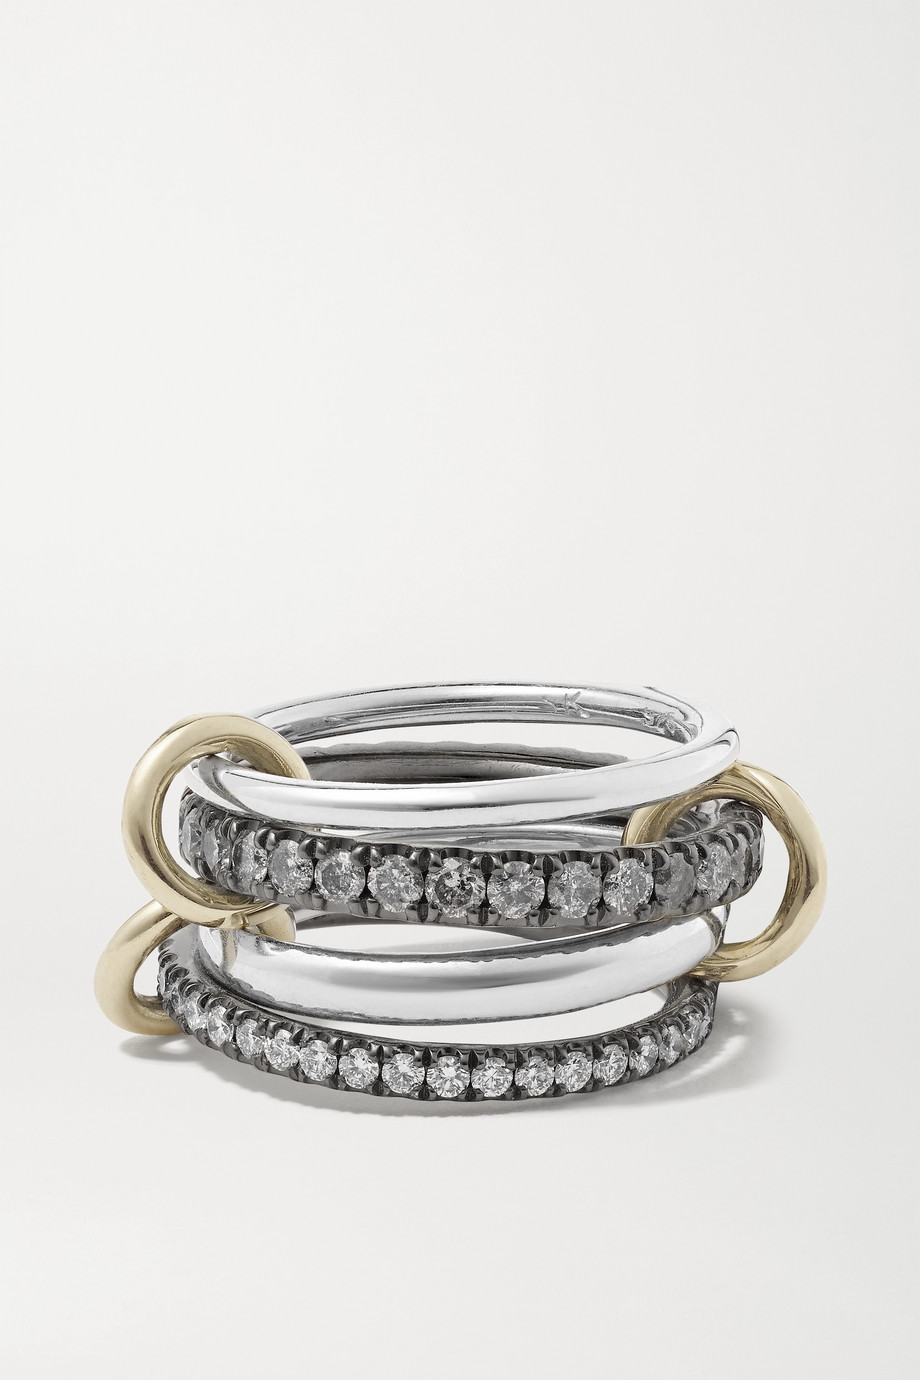 SPINELLI KILCOLLIN Sagittarius Deux Gris set of four 18-karat gold and rhodium-plated sterling silver diamond rings